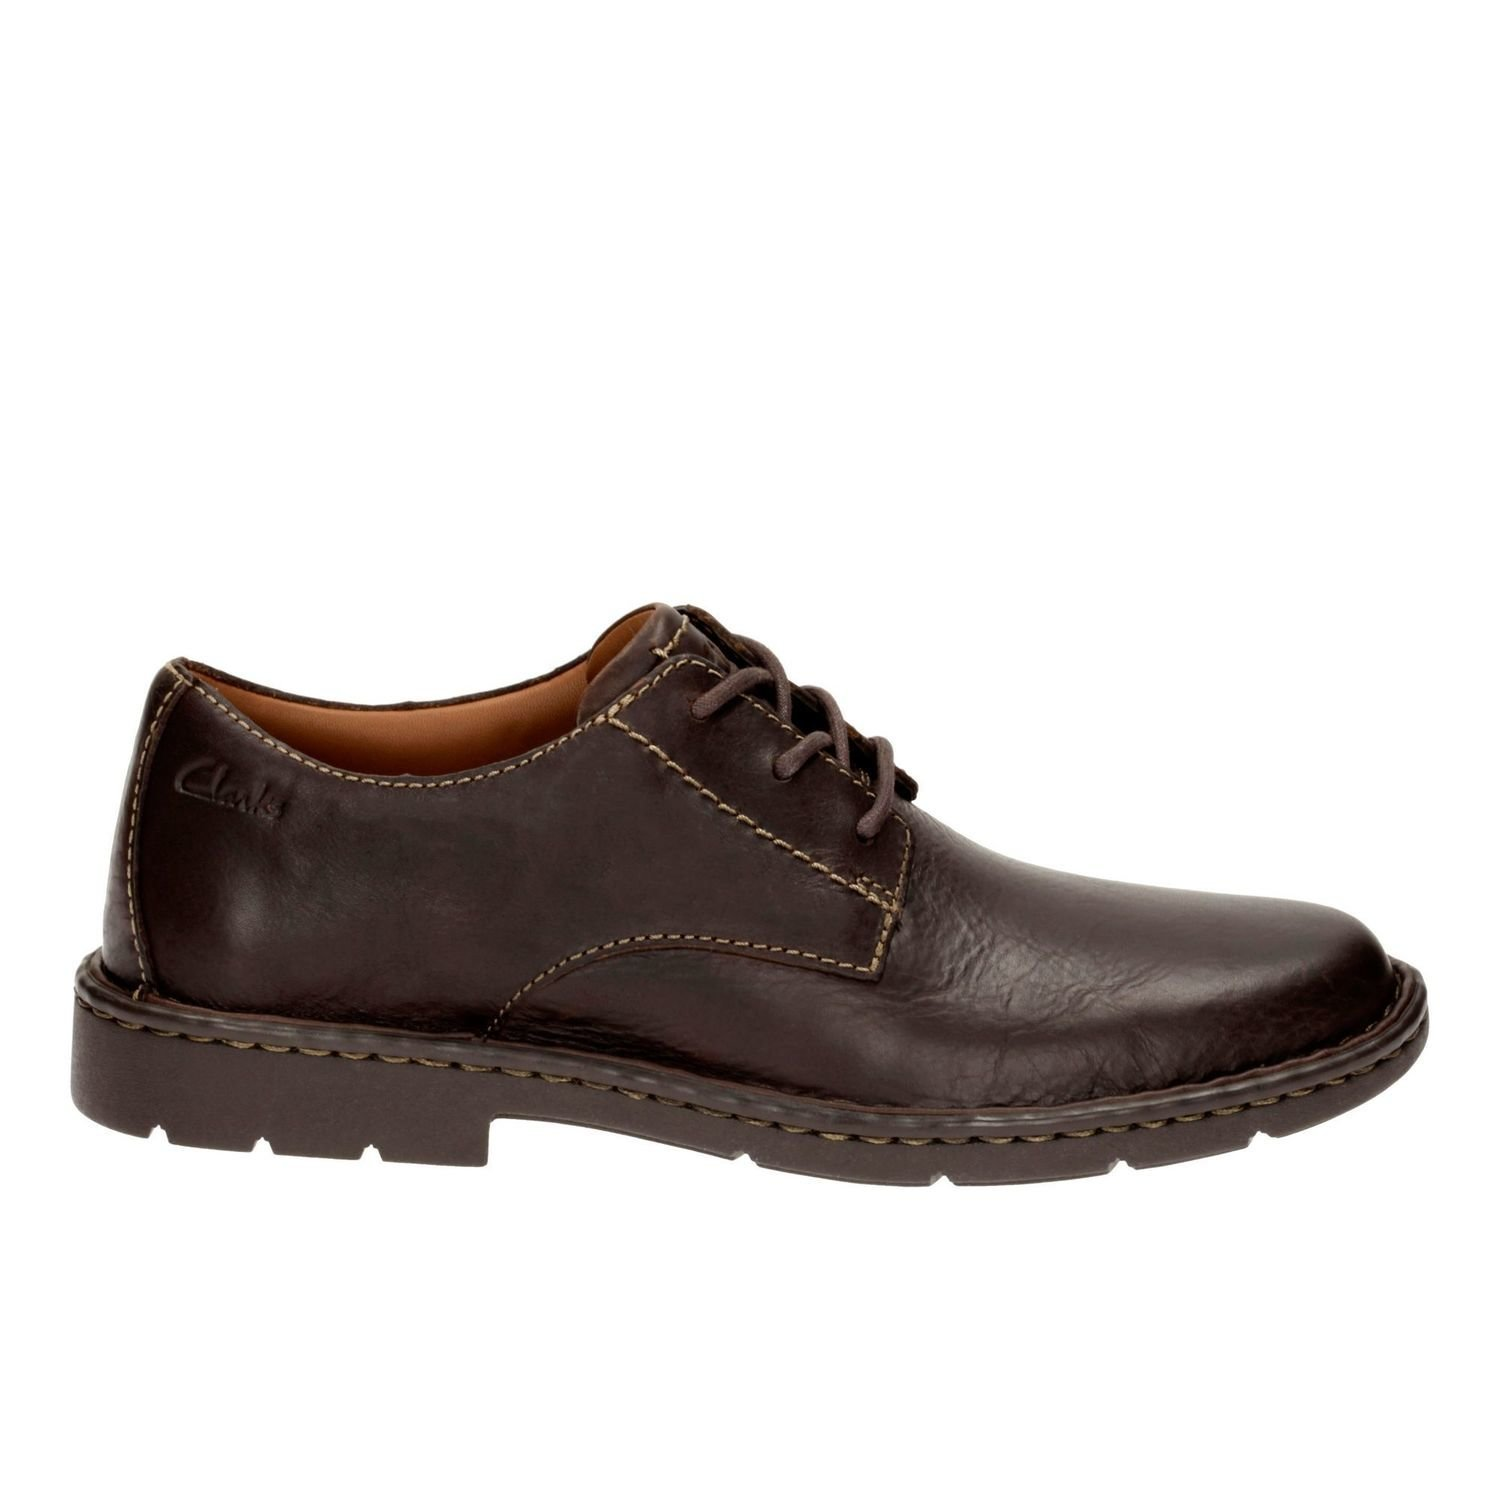 Zapatos Stratton Way Cuero Marron TN-2380124